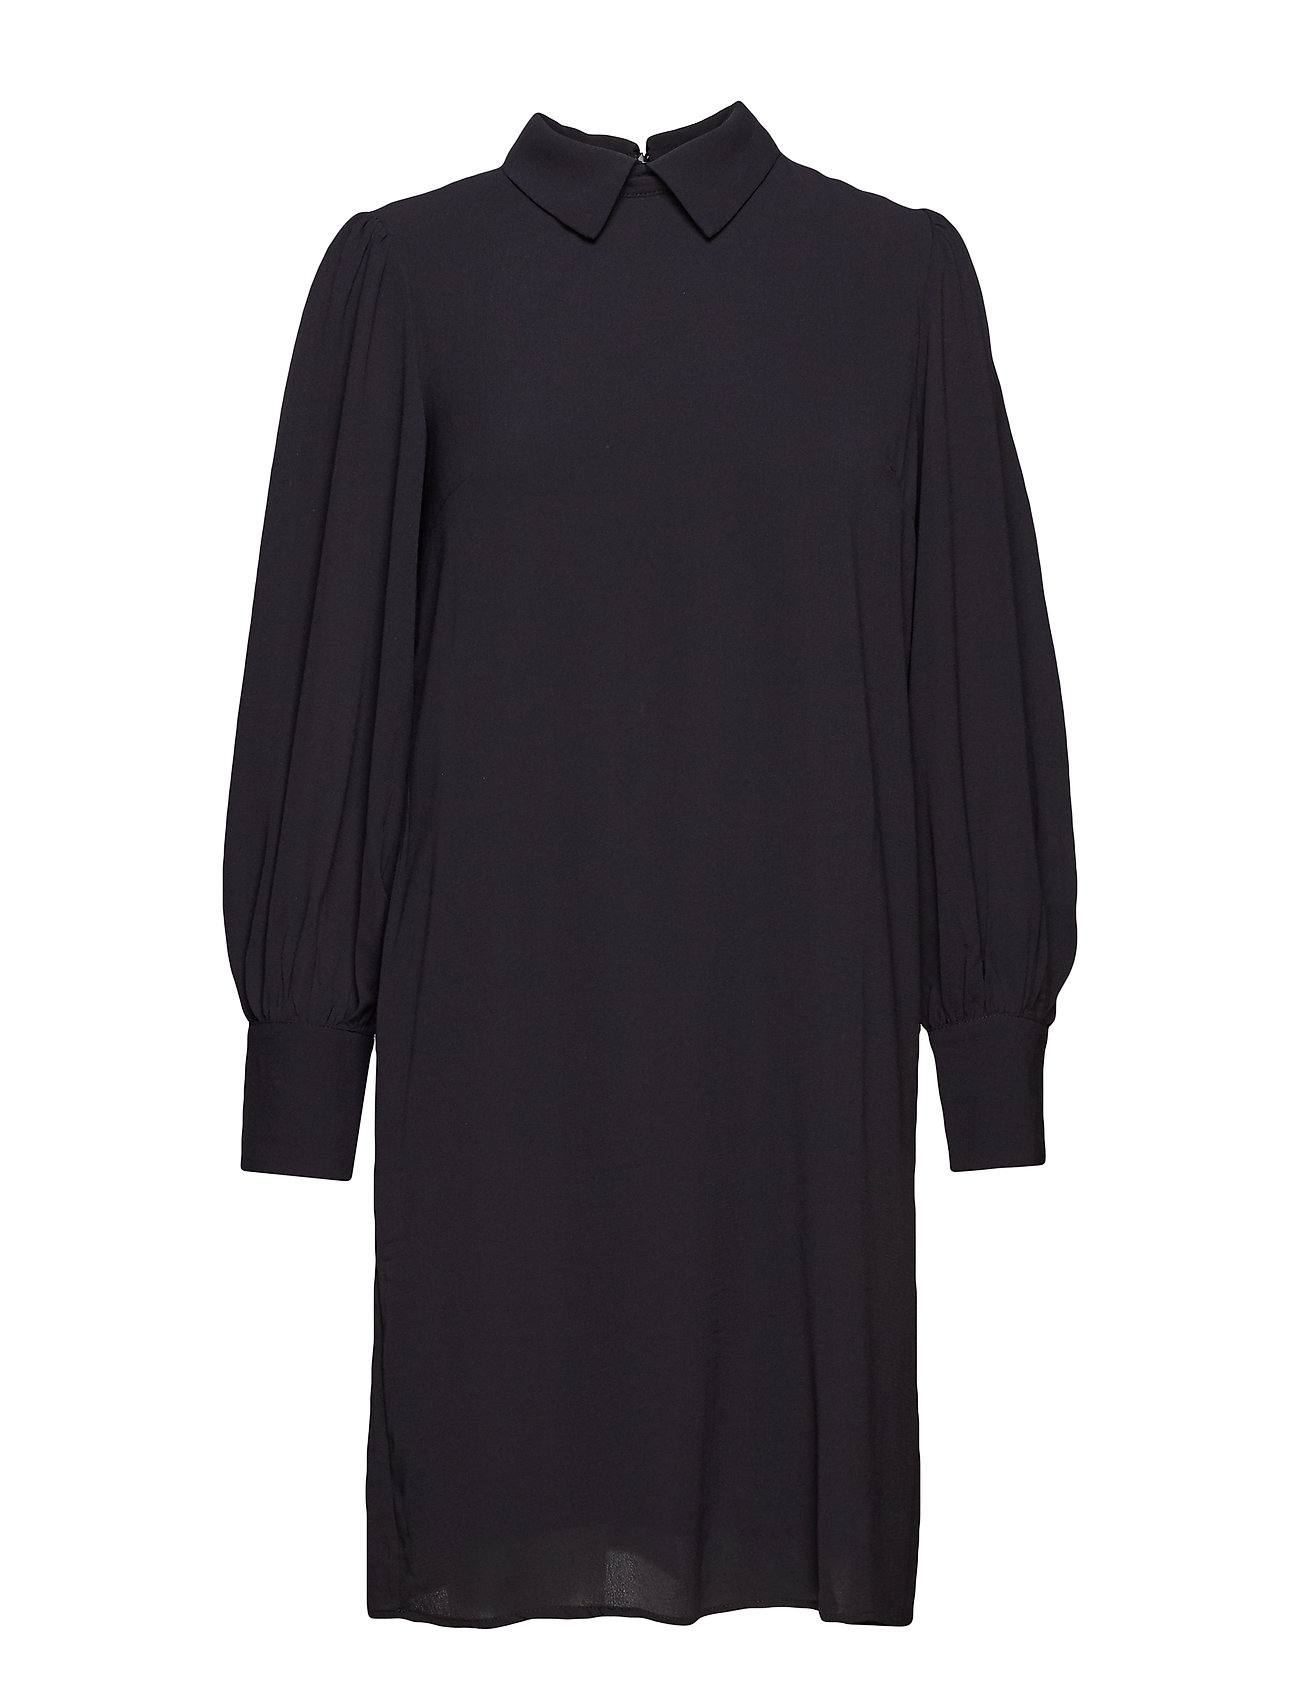 Minus Madeline dress - BLACK